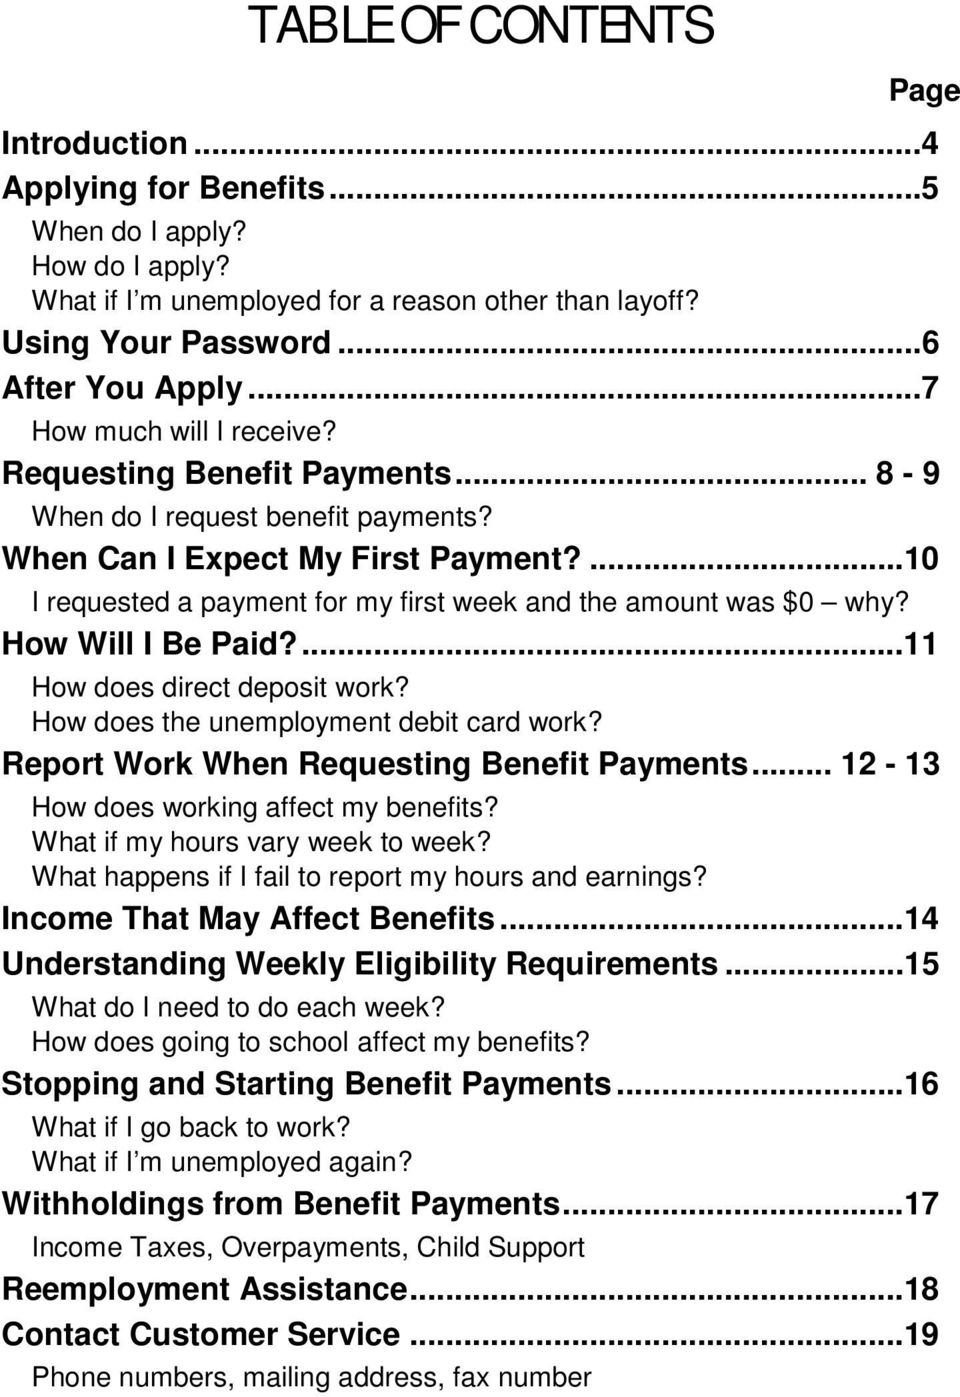 ...10 I requested a payment for my first week and the amount was $0 why? How Will I Be Paid?...11 How does direct deposit work? How does the unemployment debit card work?